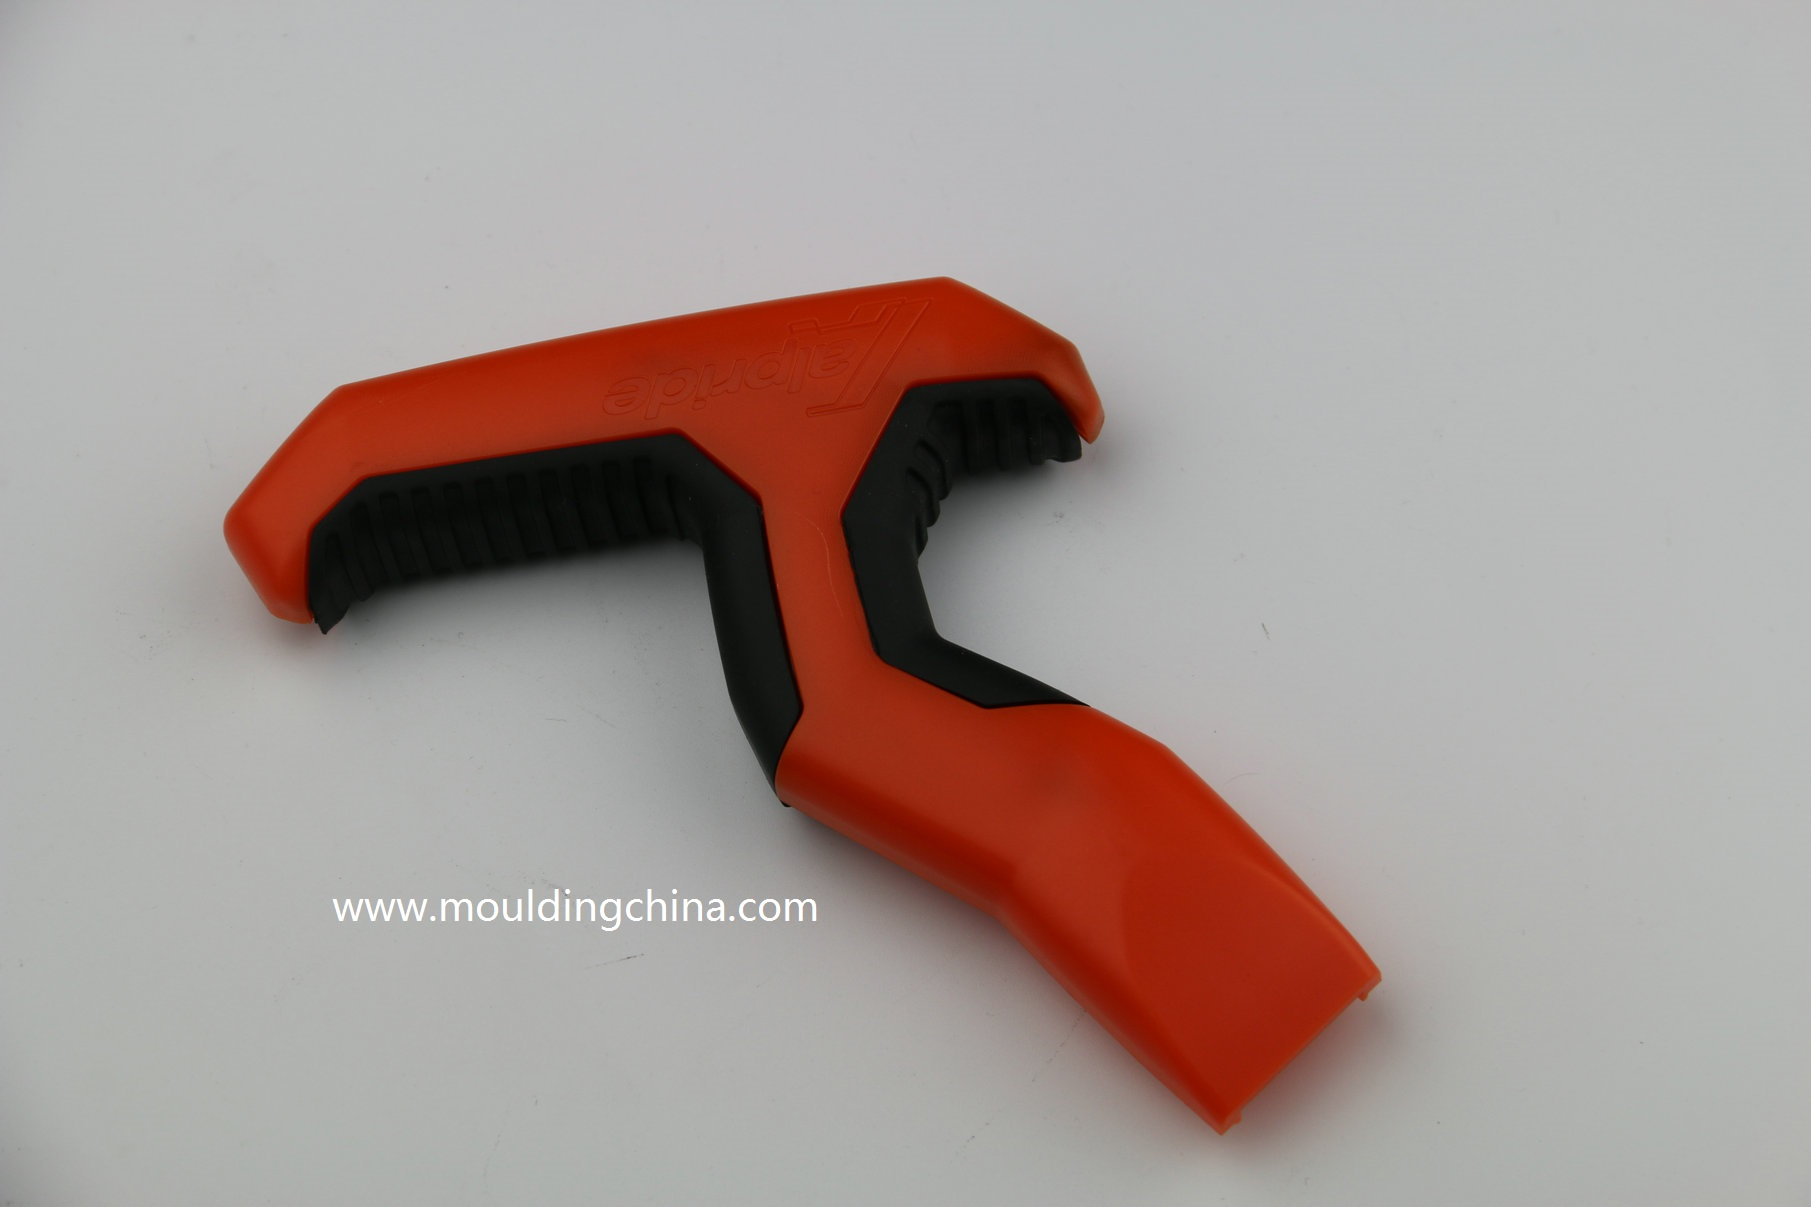 image of overmolding handle